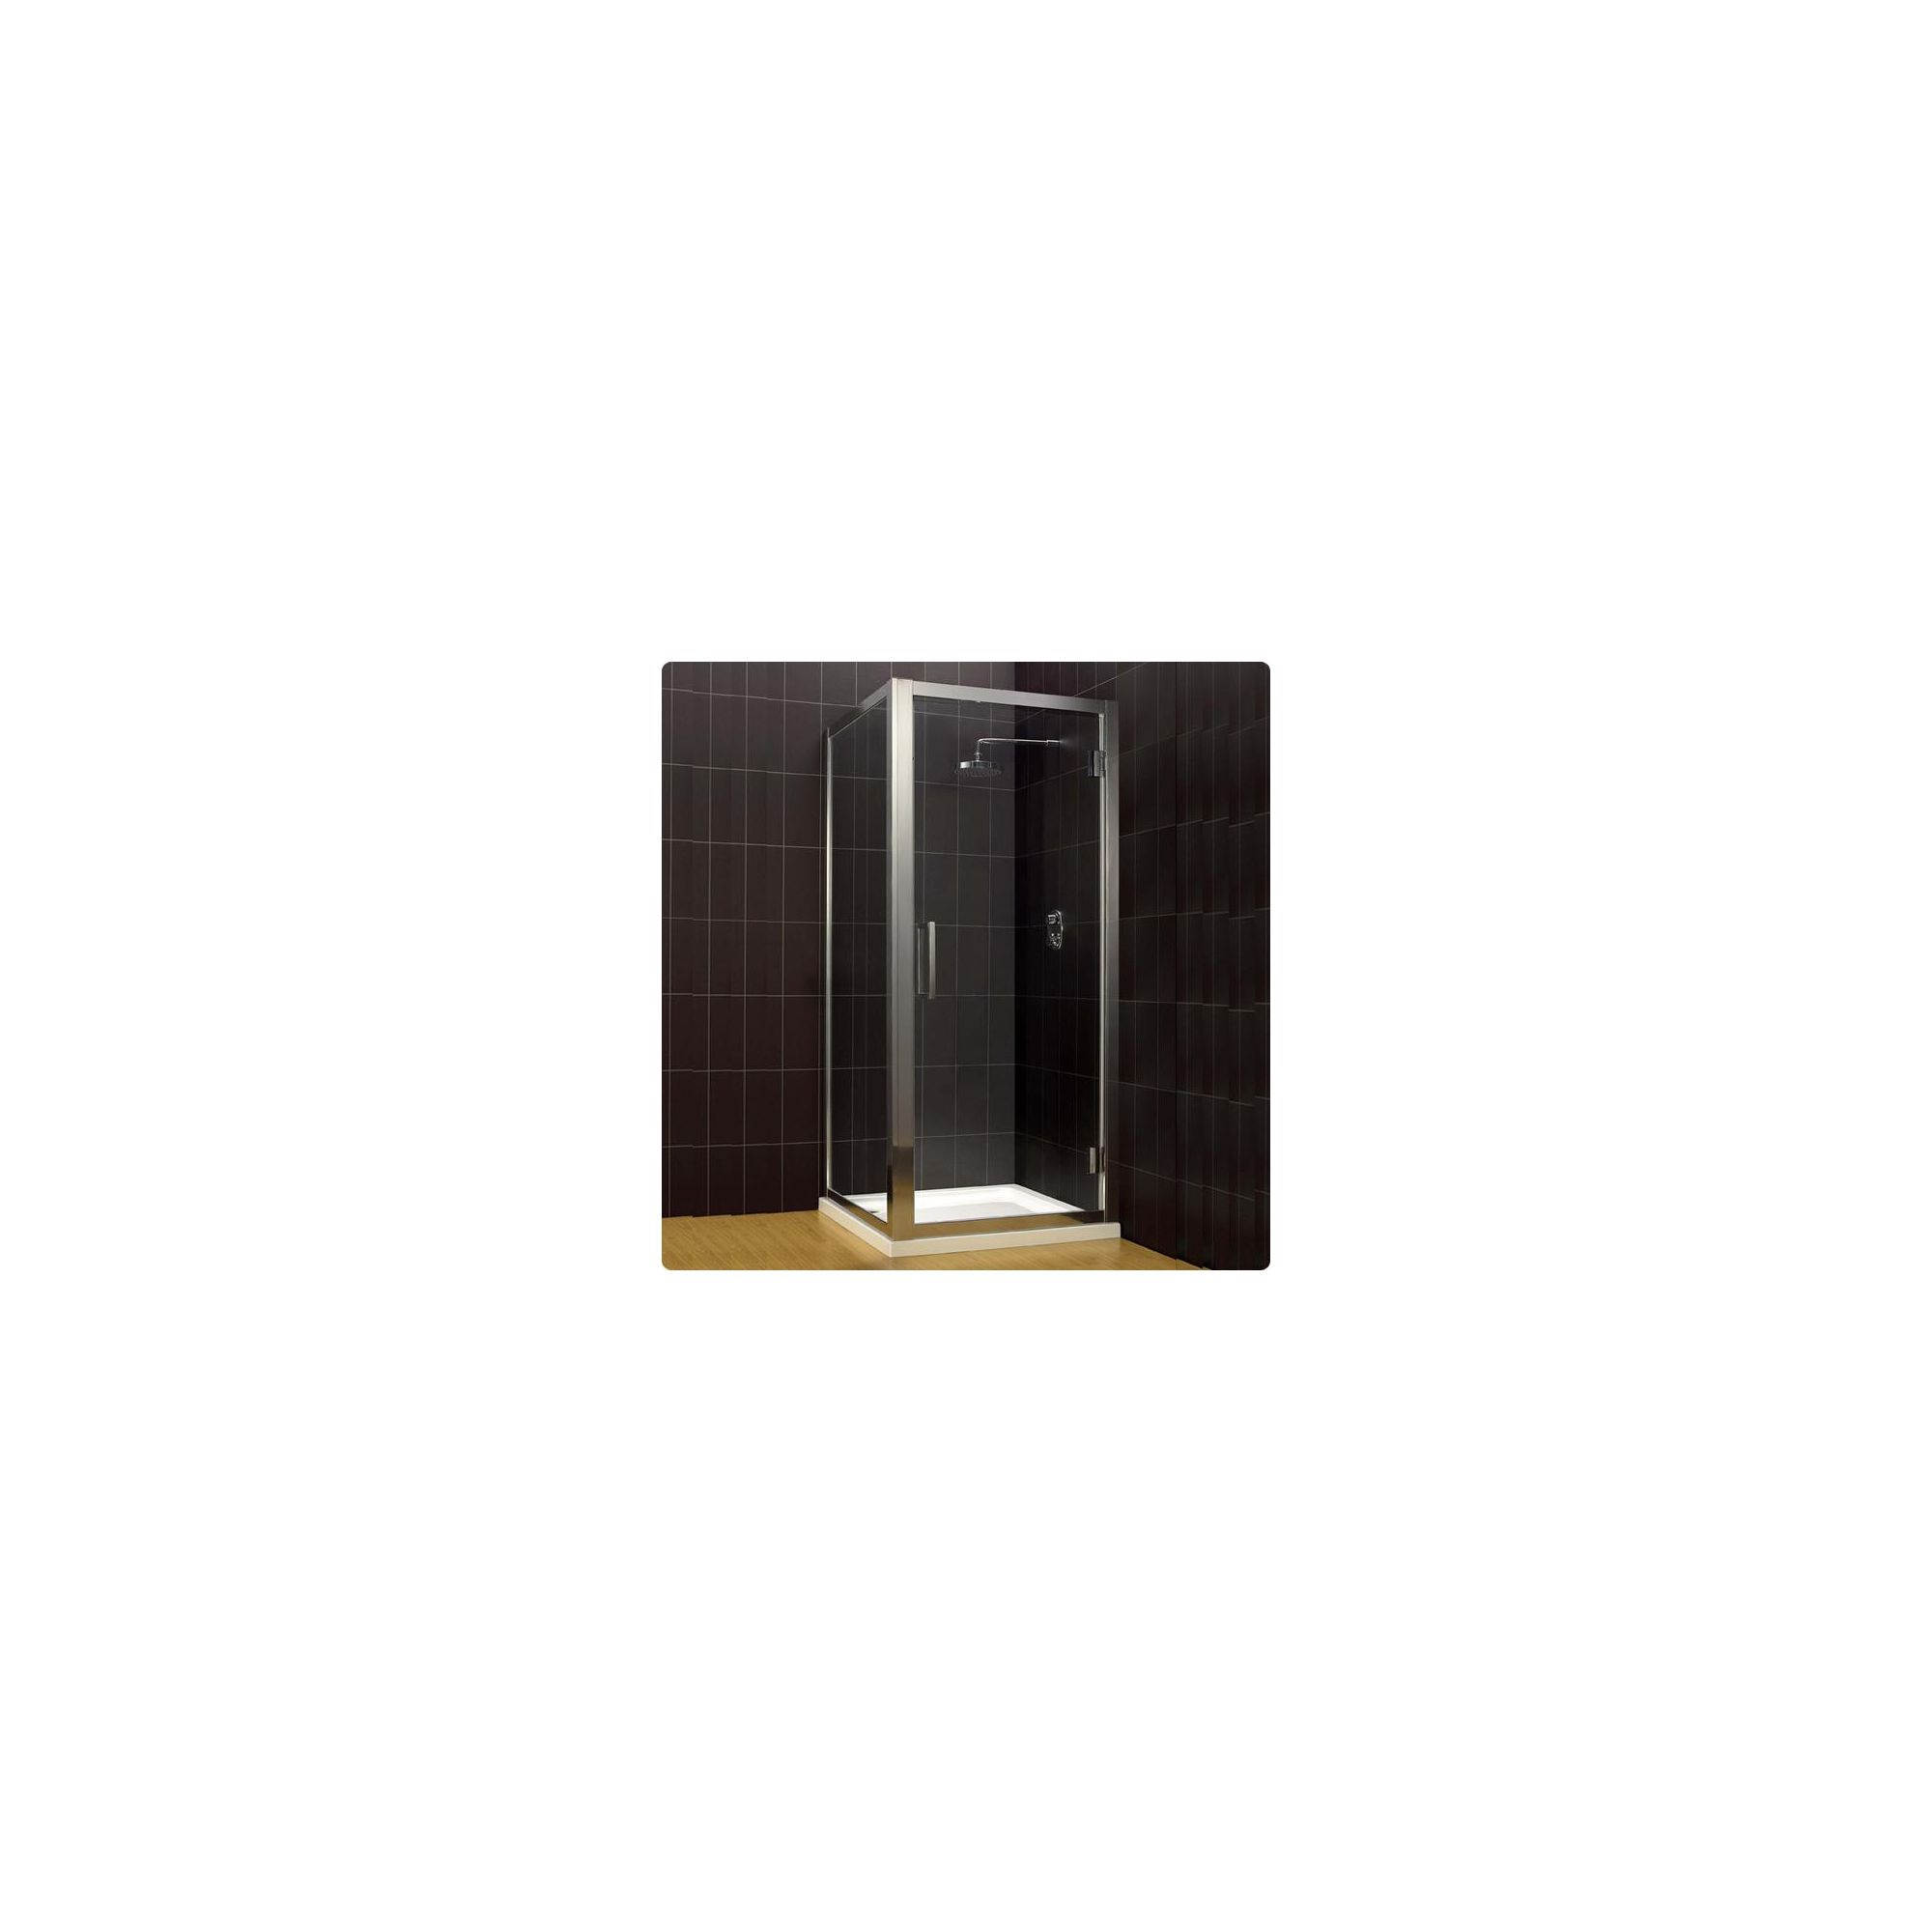 Duchy Supreme Silver Hinged Door Shower Enclosure, 1000mm x 1000mm, Standard Tray, 8mm Glass at Tesco Direct